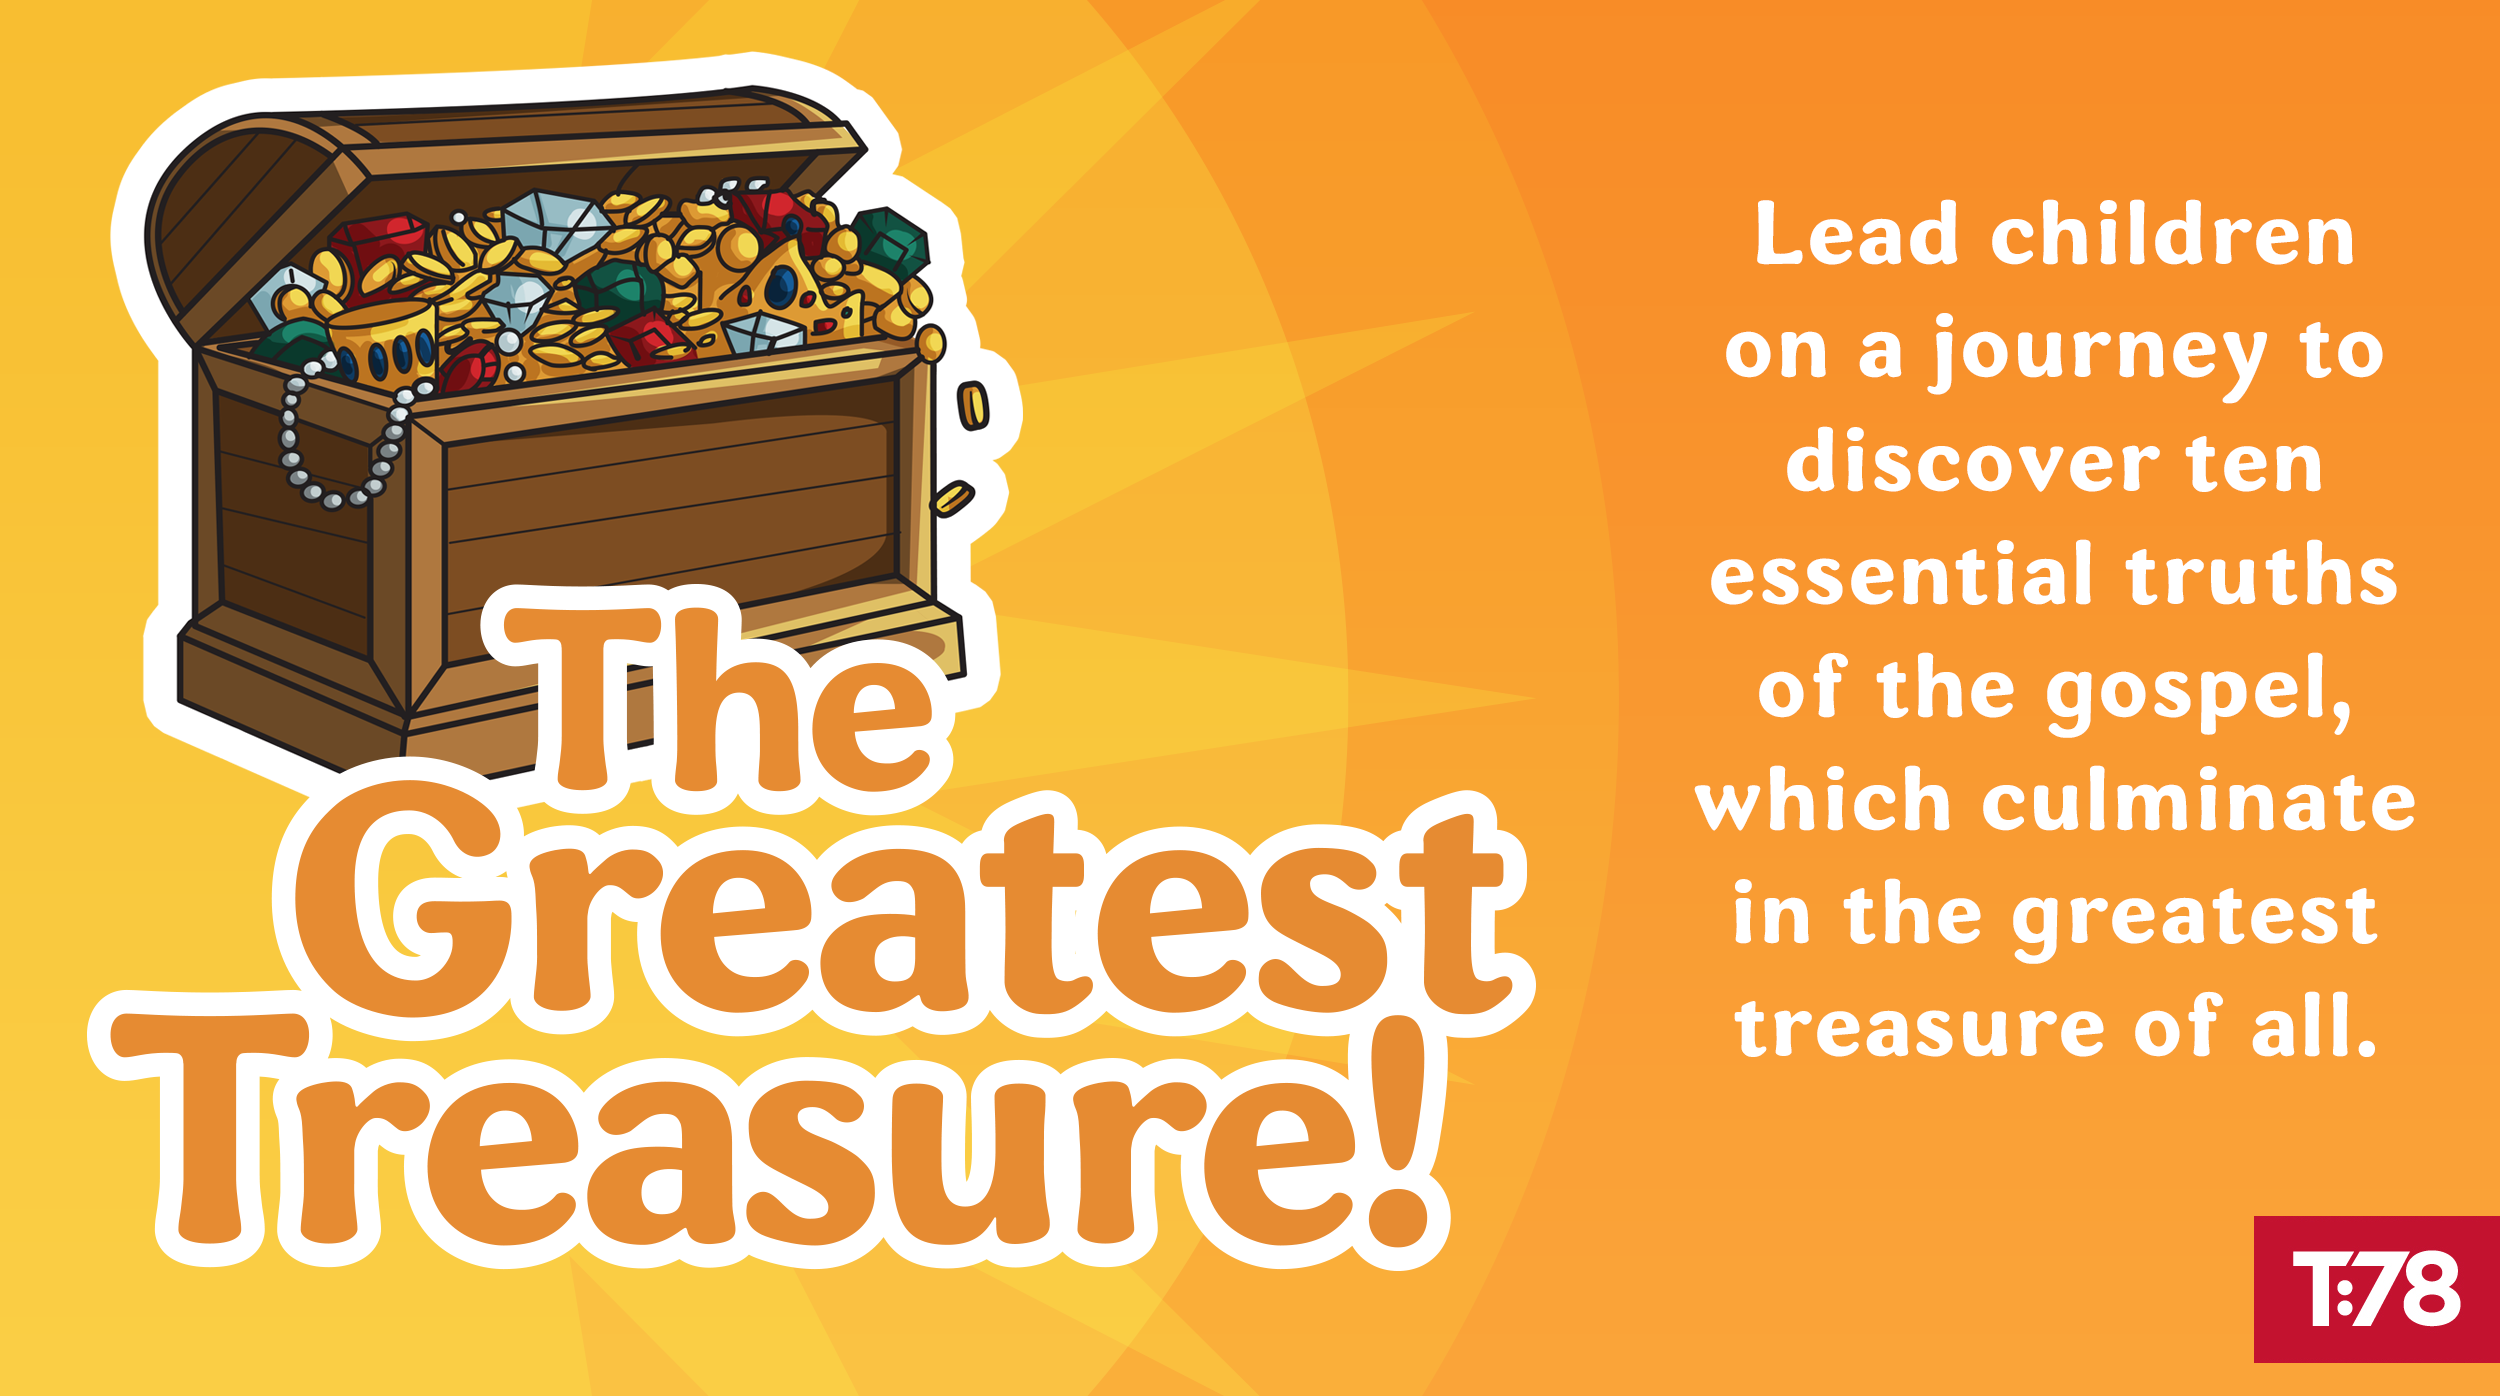 The Greatest Treasure--a new gospel outreach tool